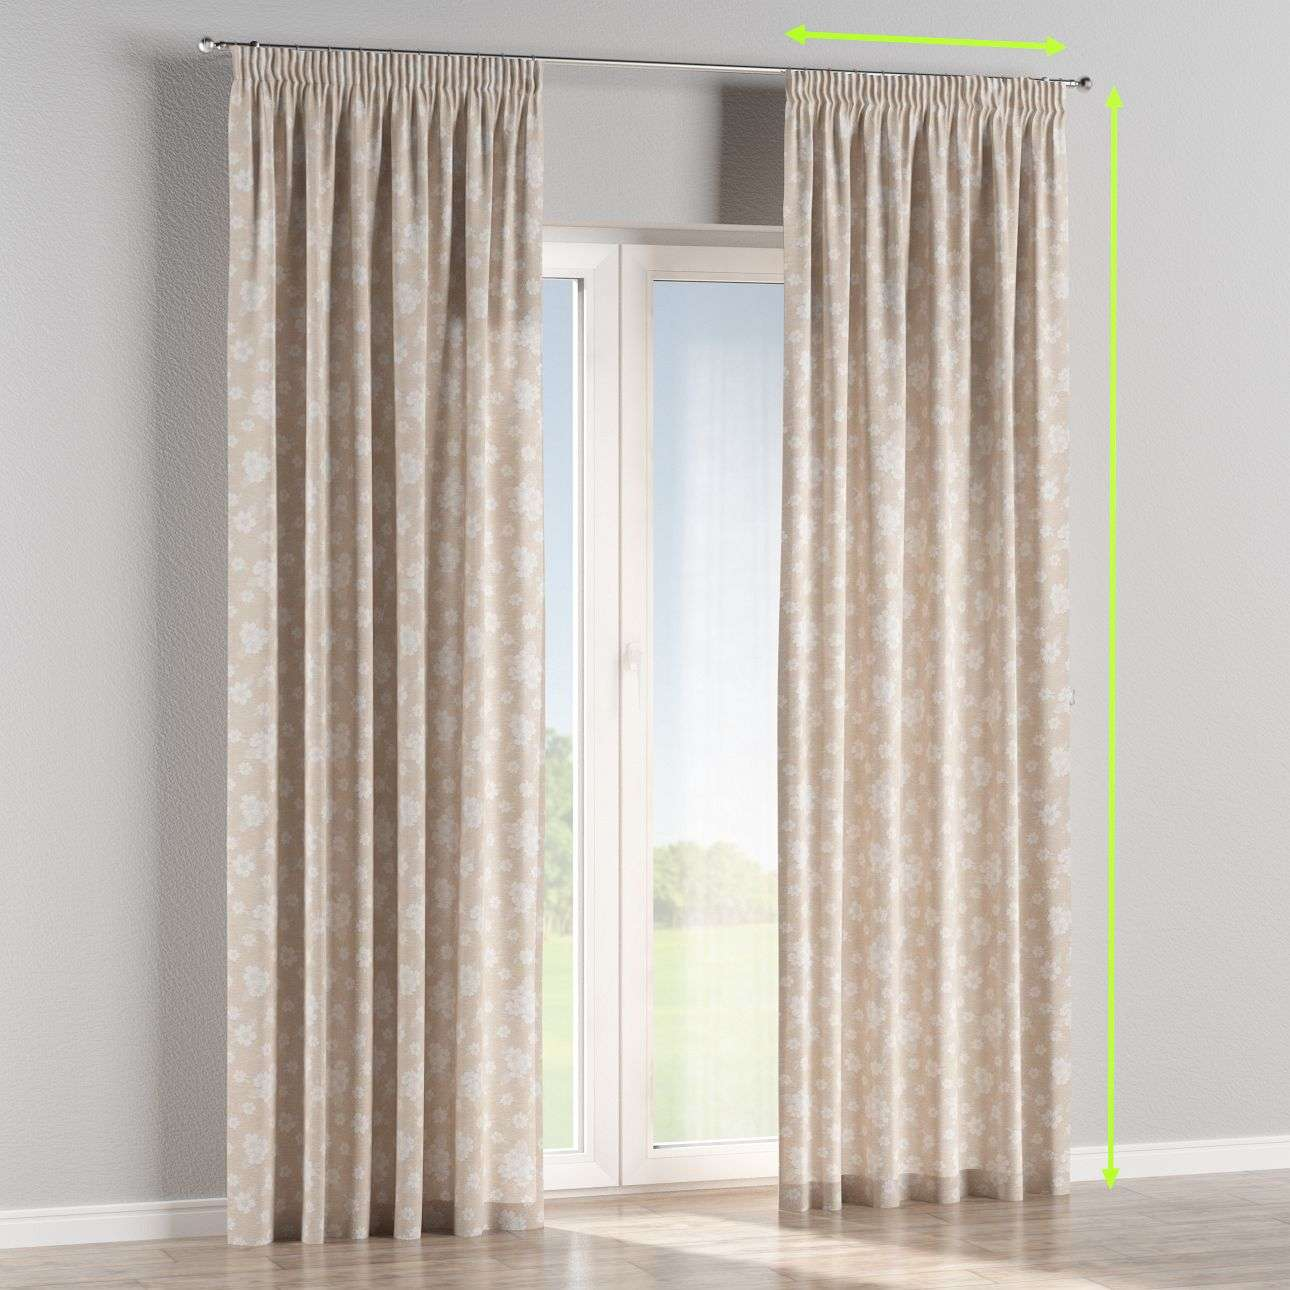 Pencil pleat curtains in collection Rustica, fabric: 138-26